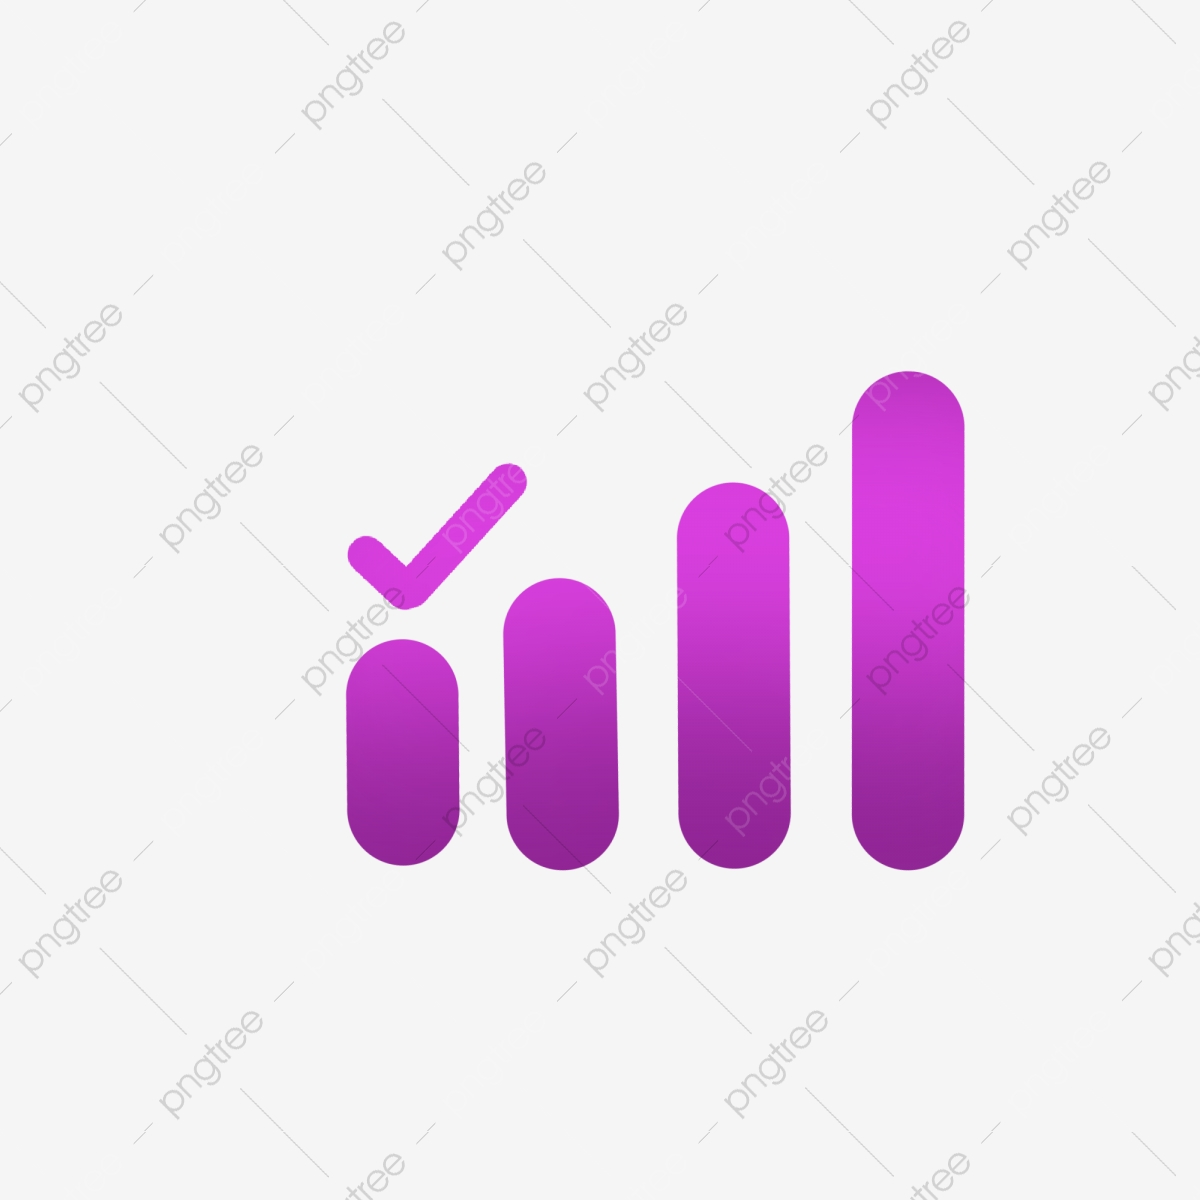 signal strength png images vector and psd files free download on pngtree pngtree